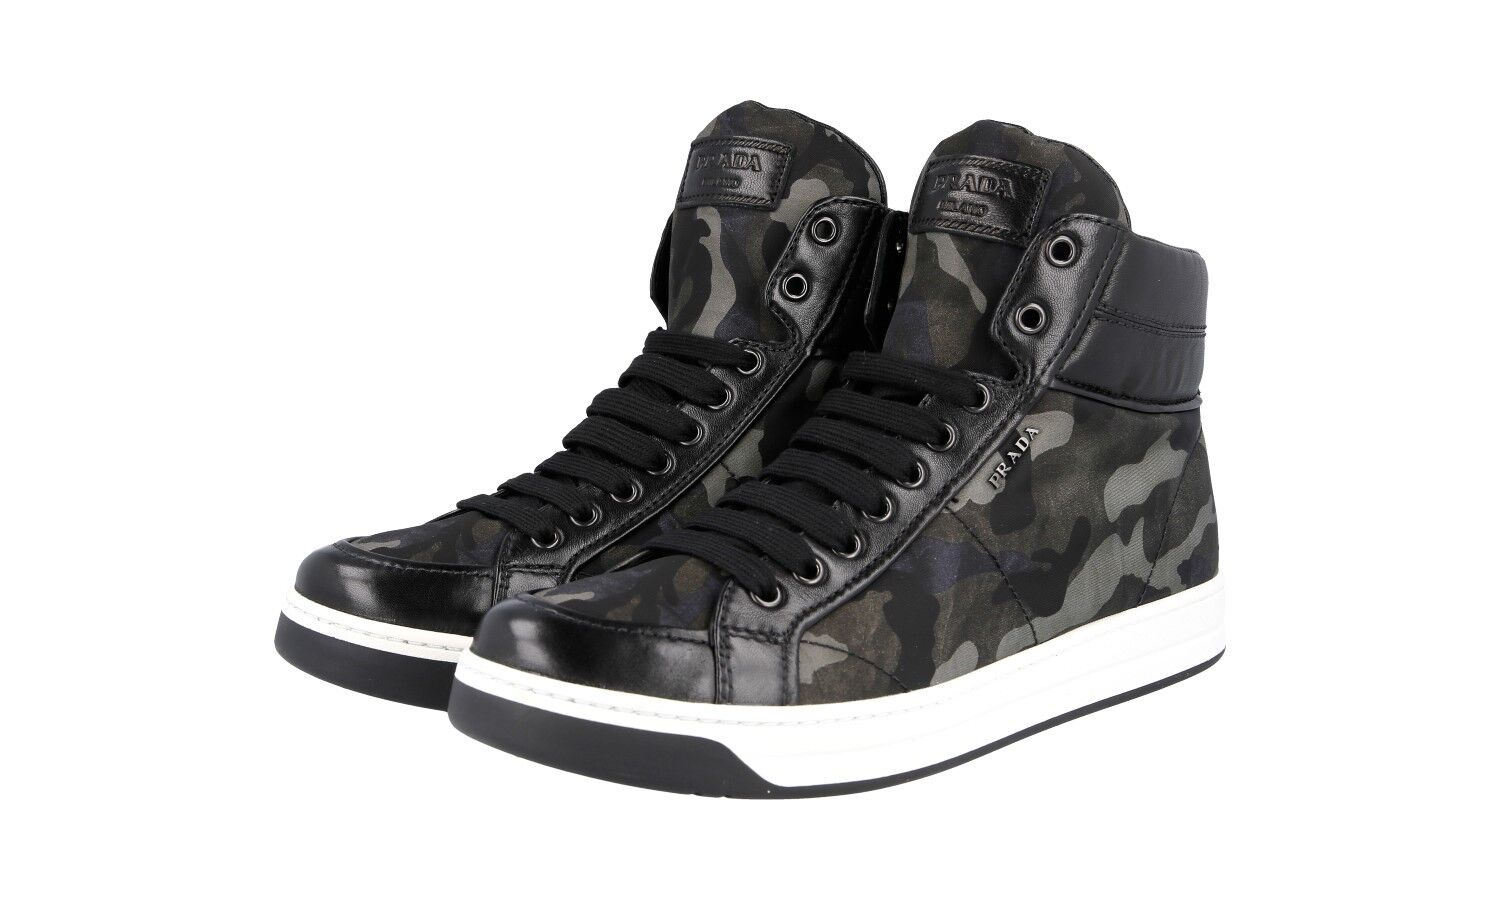 AUTH LUXURY PRADA SNEAKERS SHOES 3T5770 CAMOUFLAGE NEW 41 41,5 UK 8